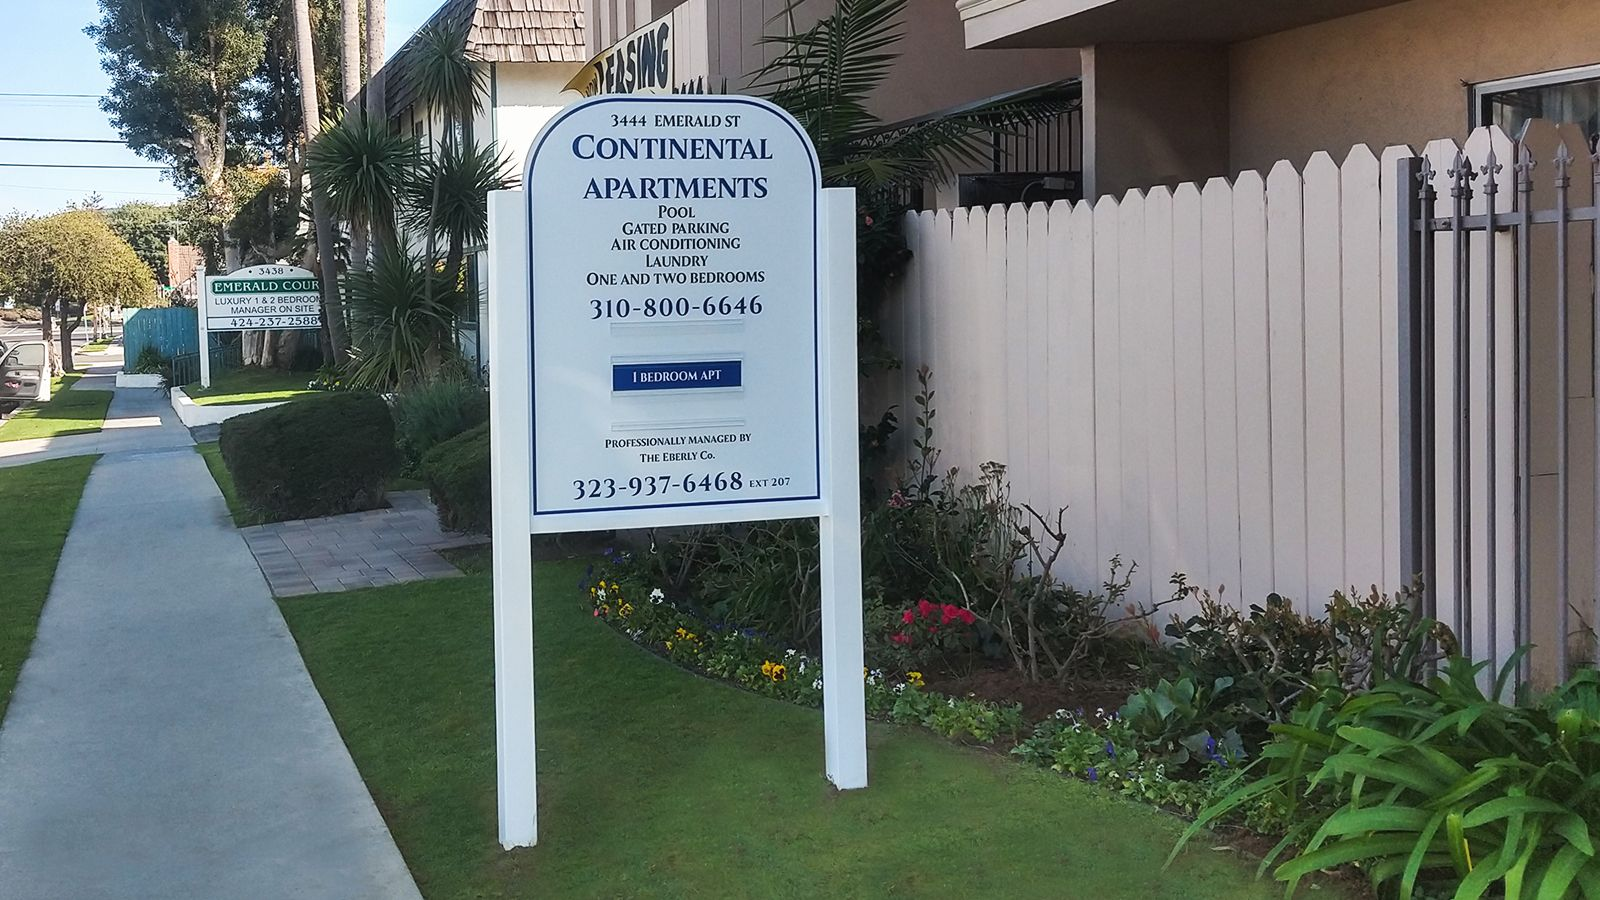 Continental Apartments real estate sign